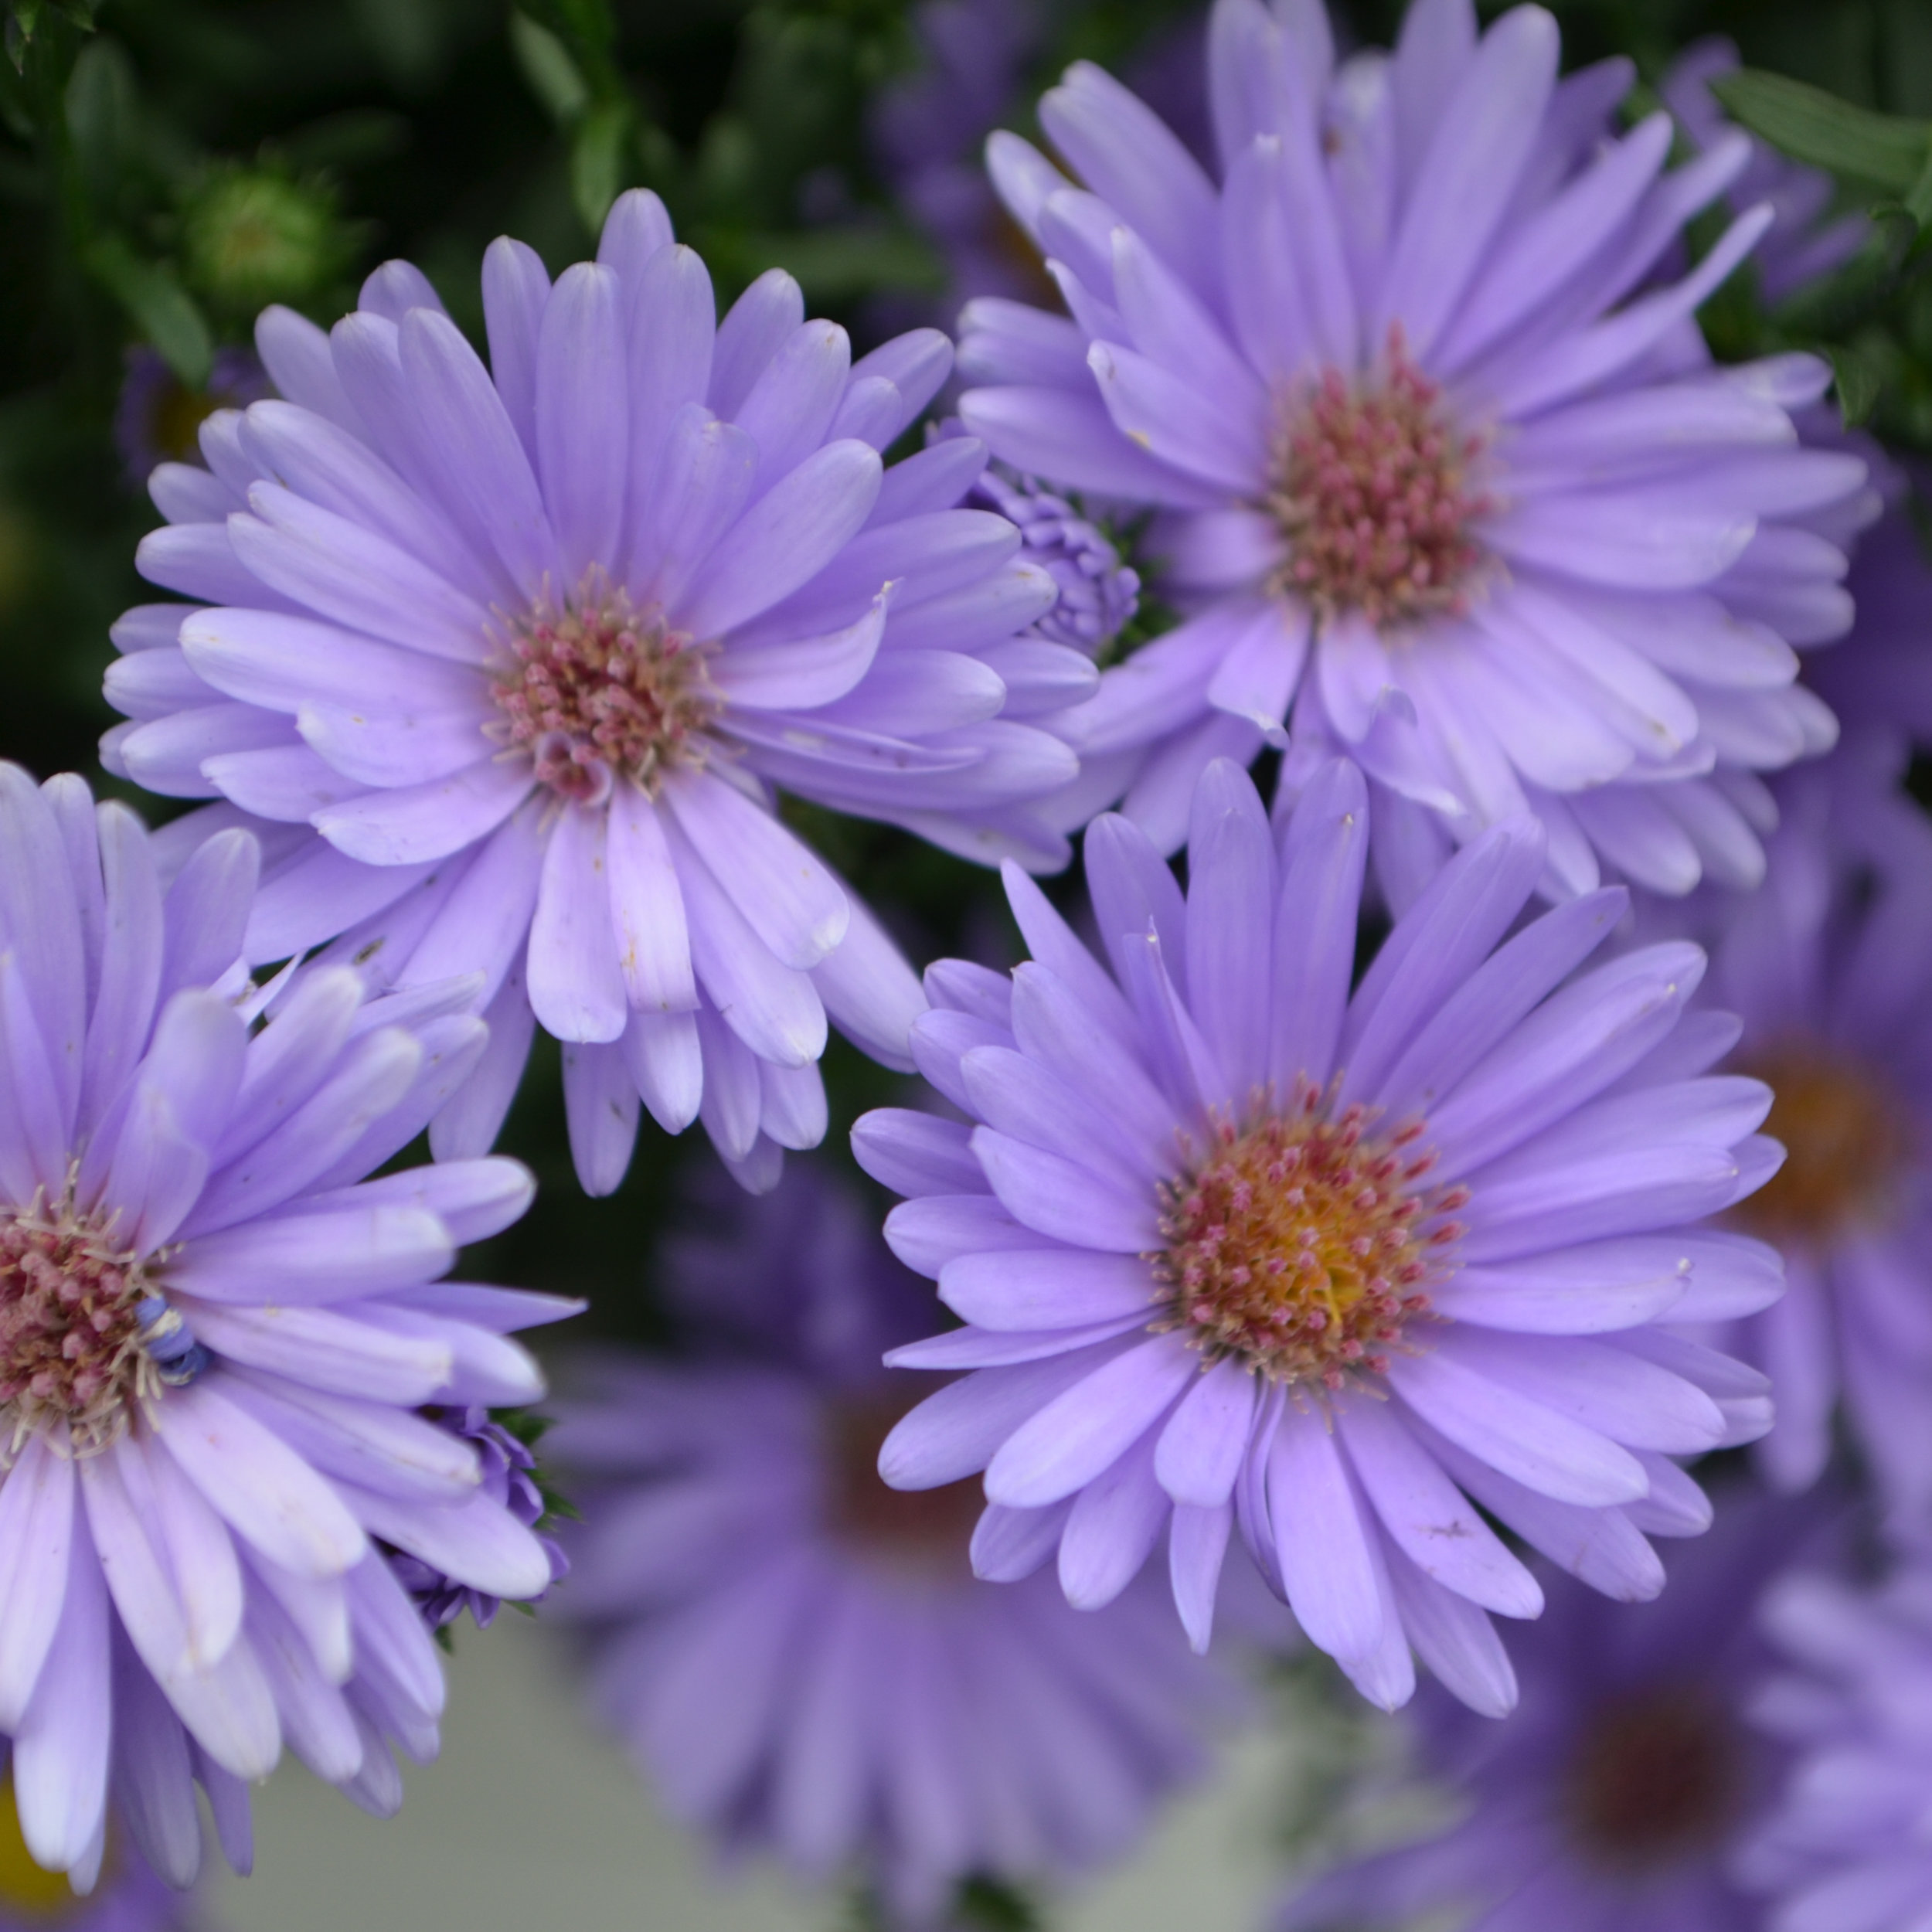 Aster_Days_Blue_Bloom_13085 (1).jpg